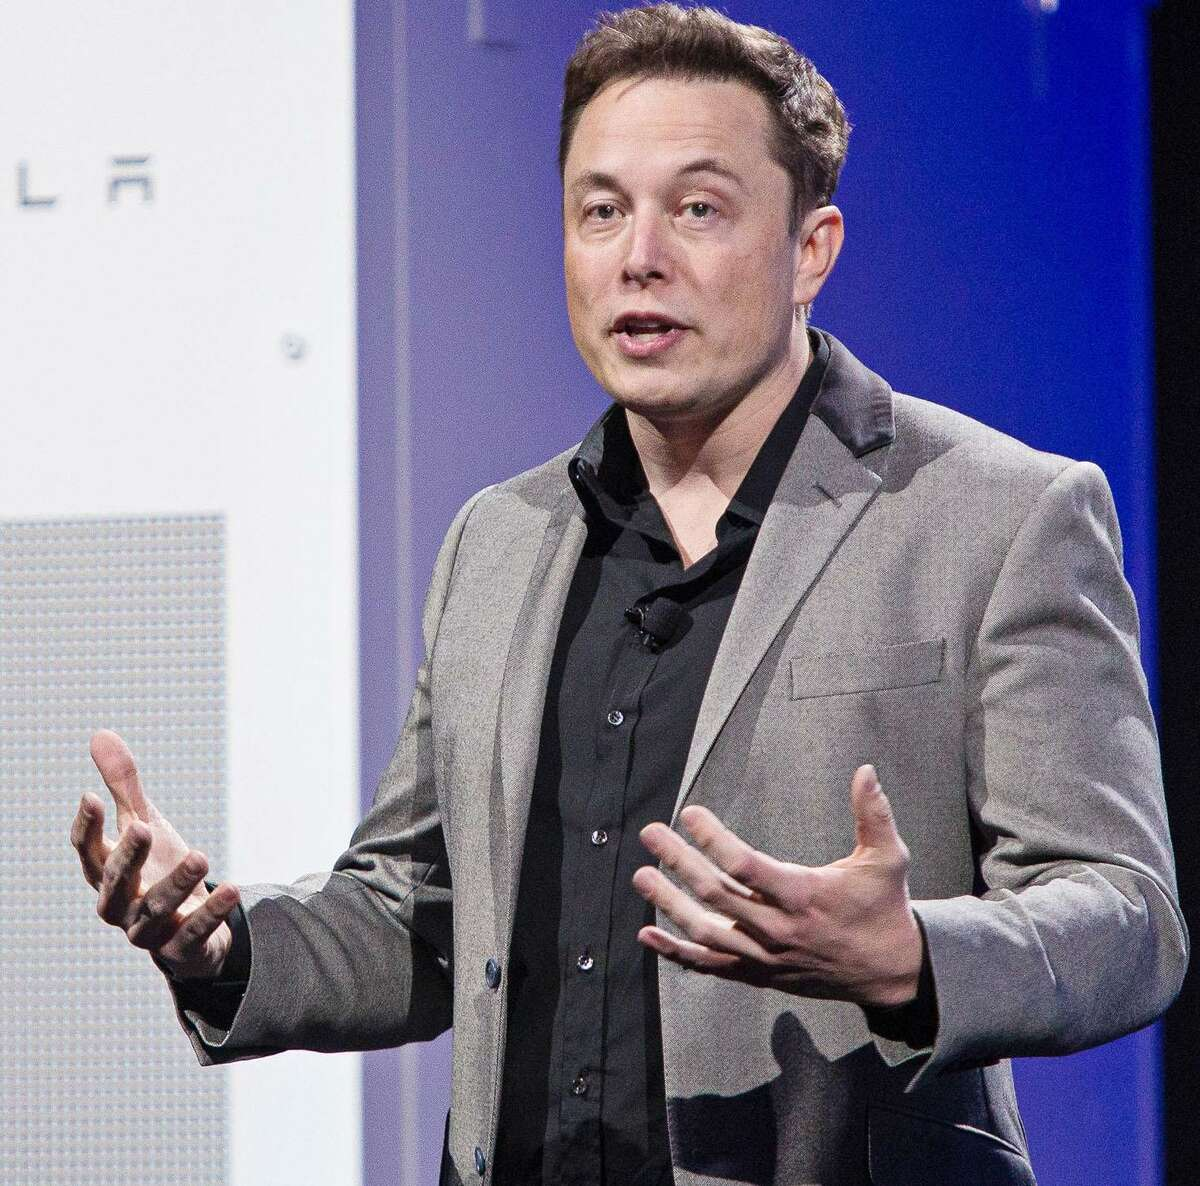 Tesla has disclosed that its billionaire CEO Elon Musk paid at least $593 million in income taxes last year. He got hit with the big tax bill after exercising stock options that were set to expire at the end of 2016, a filing shows.